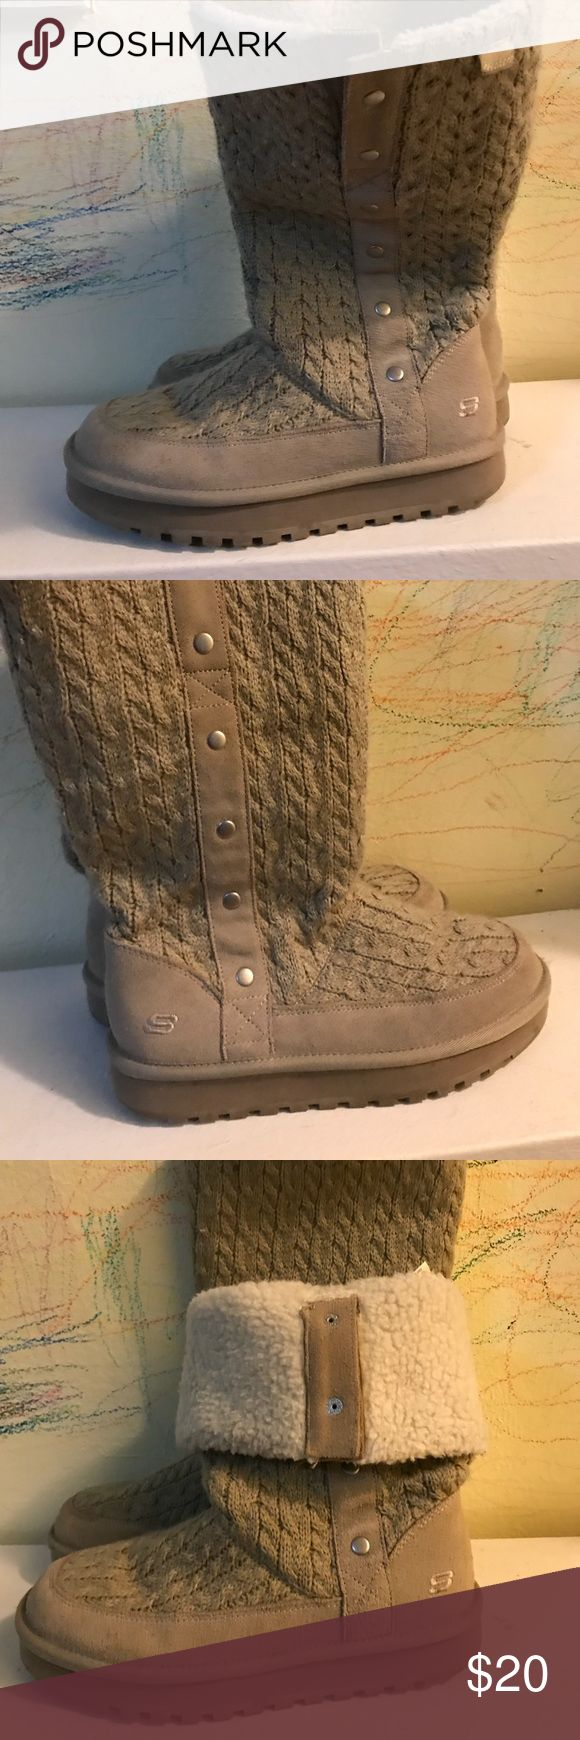 Skechers Winter Boots Comfy boots. Worn only 3-4 times. Skechers Shoes Winter & Rain Boots